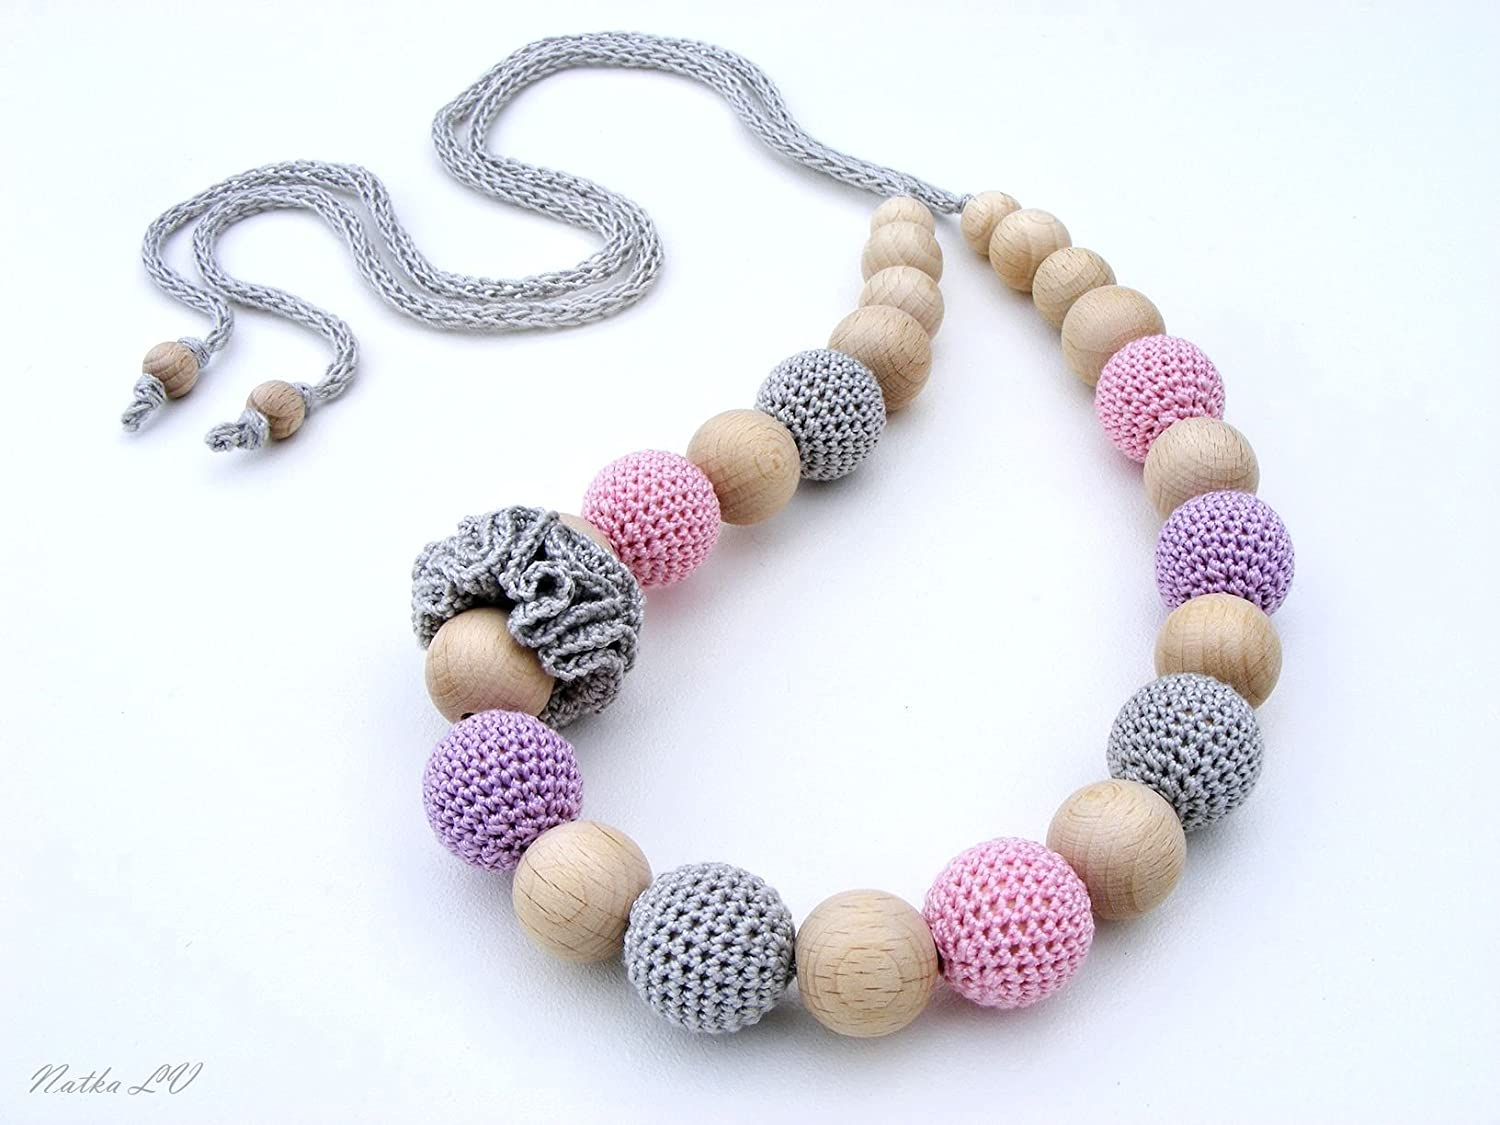 Crochet nursing necklace, teething necklace, breastfeeding necklace, natural, wooden beads, cotton, grey pink lavender, unisex teething toy, new baby gift